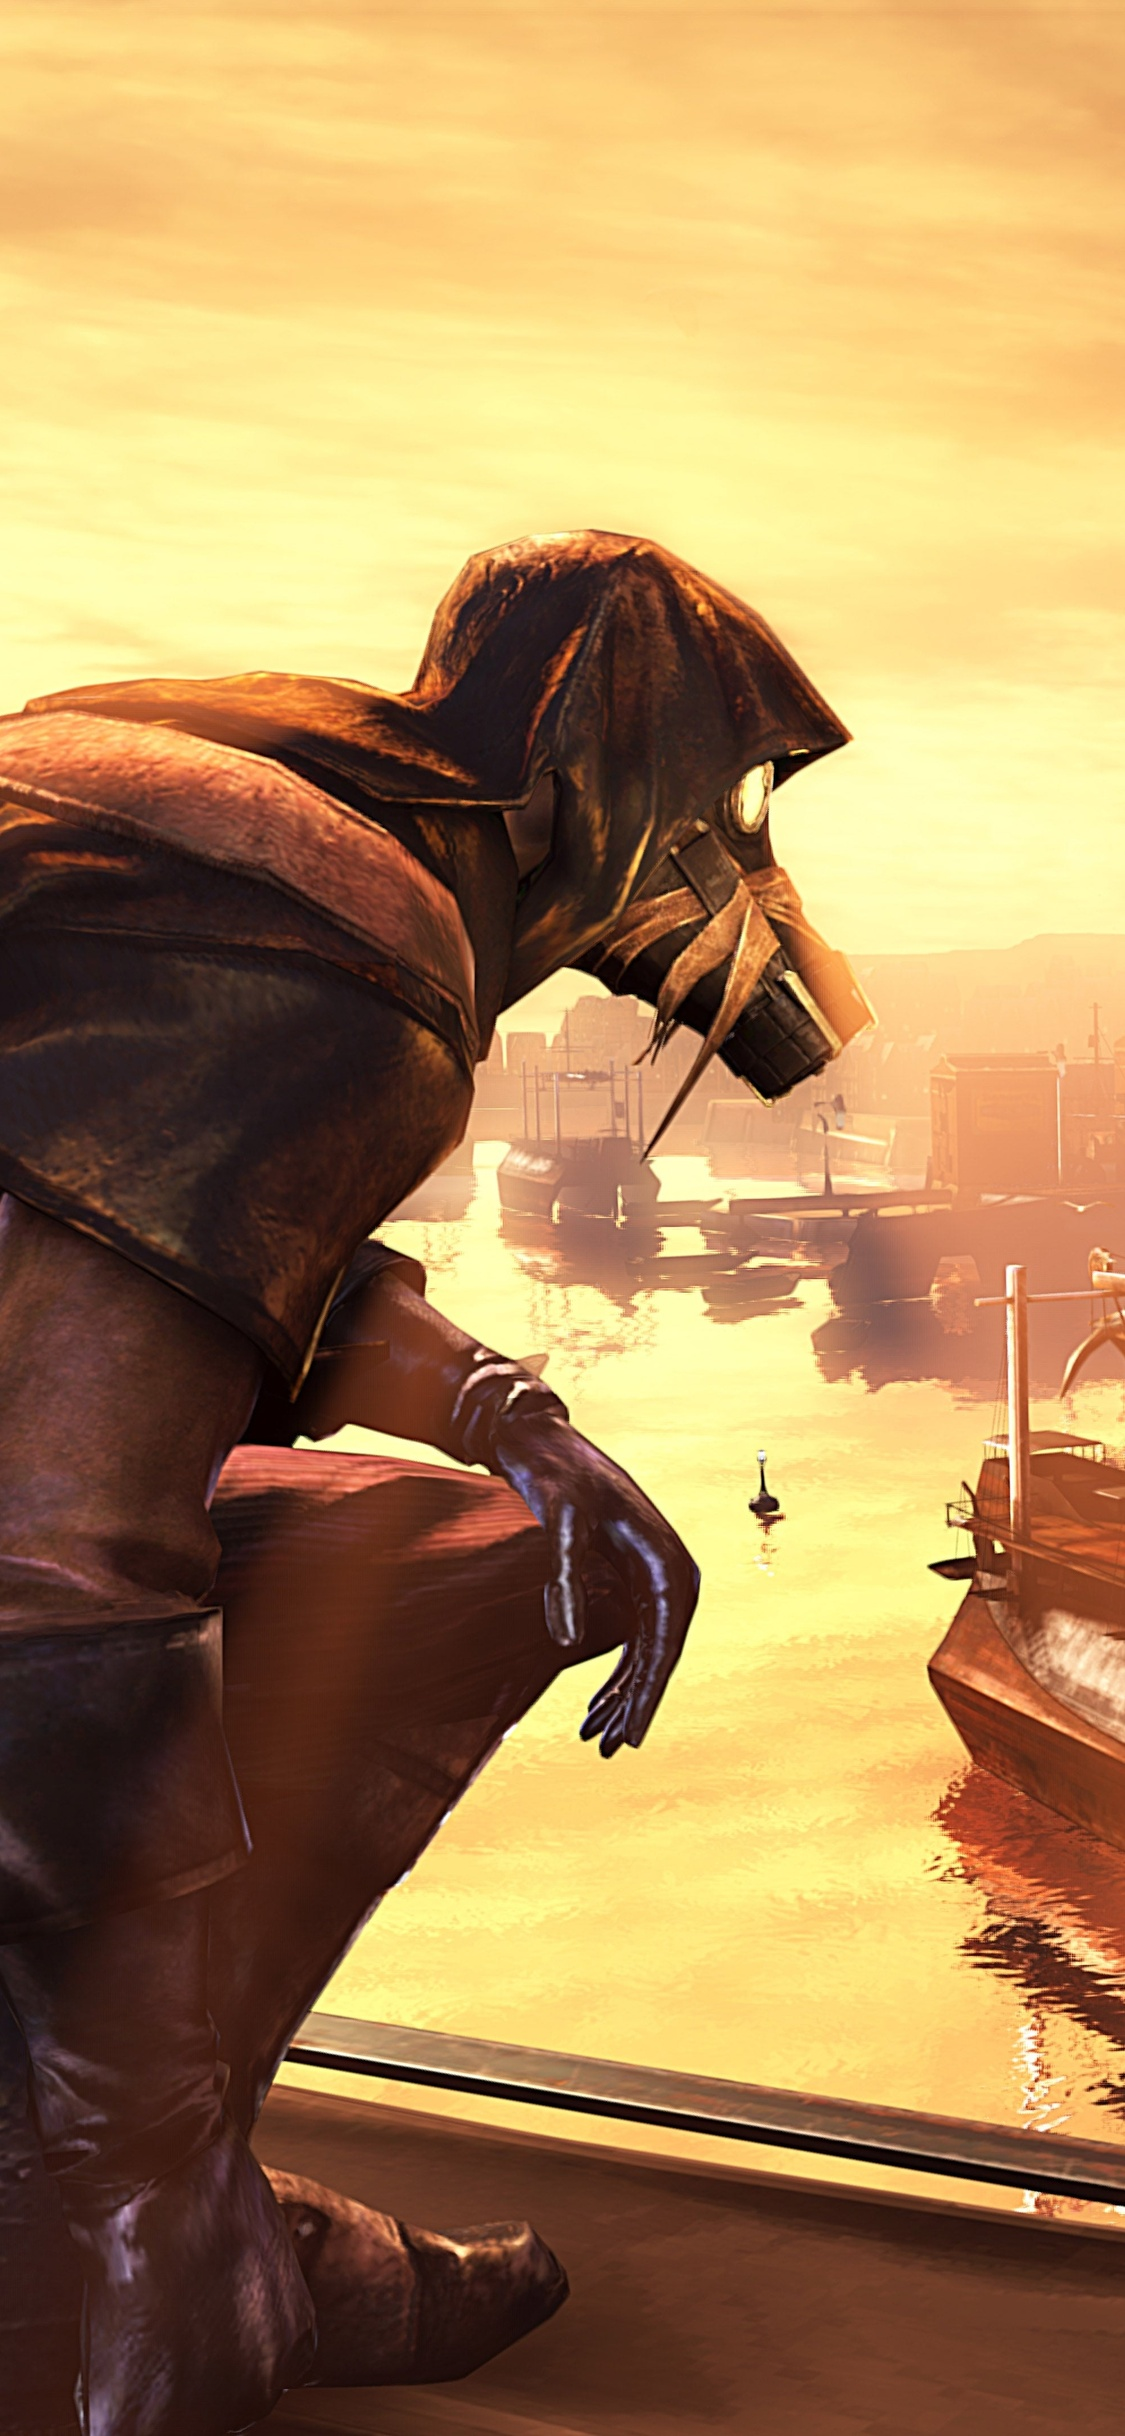 1125x2436 Dishonored The Knife Of Dunwall Iphone XS,Iphone ...